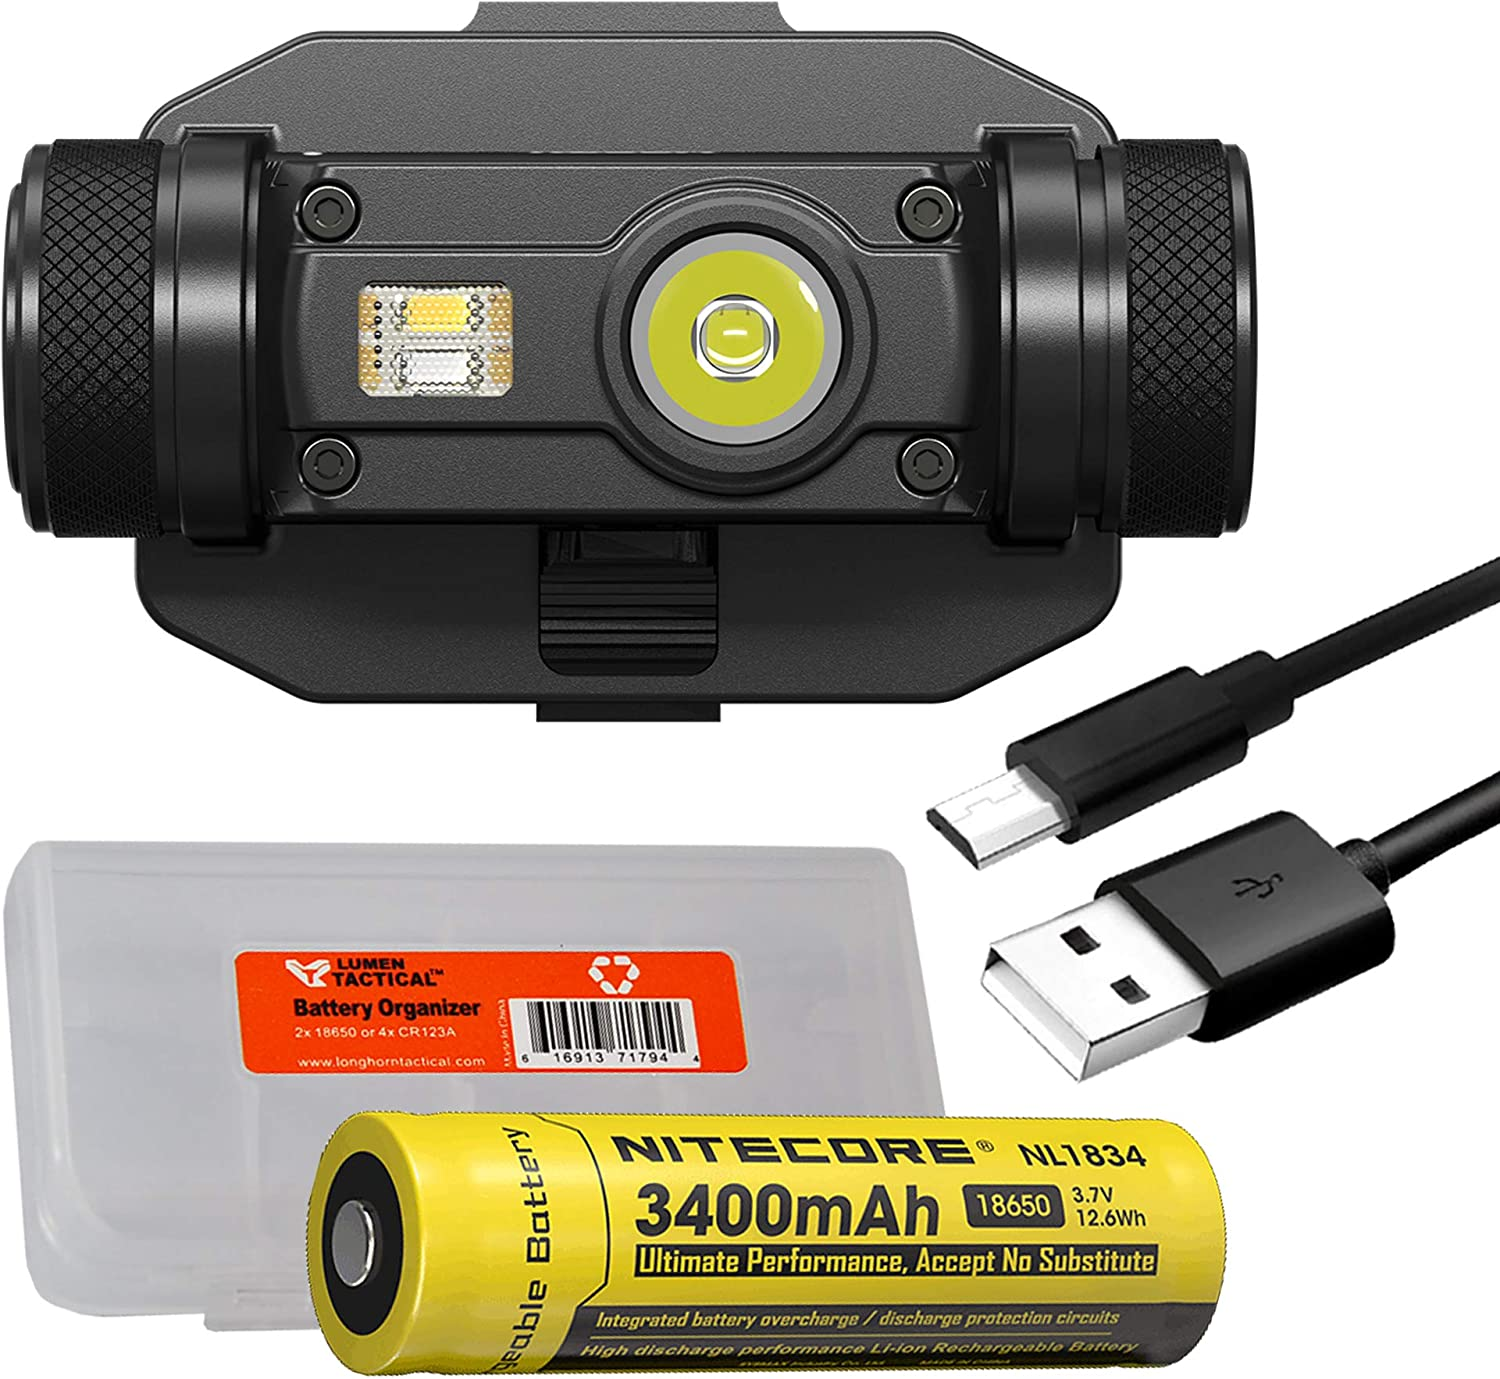 Nitecore HC65M New mail order 1000 Lumen NVG USB Rechargeable Tactica Mountable Free Shipping Cheap Bargain Gift